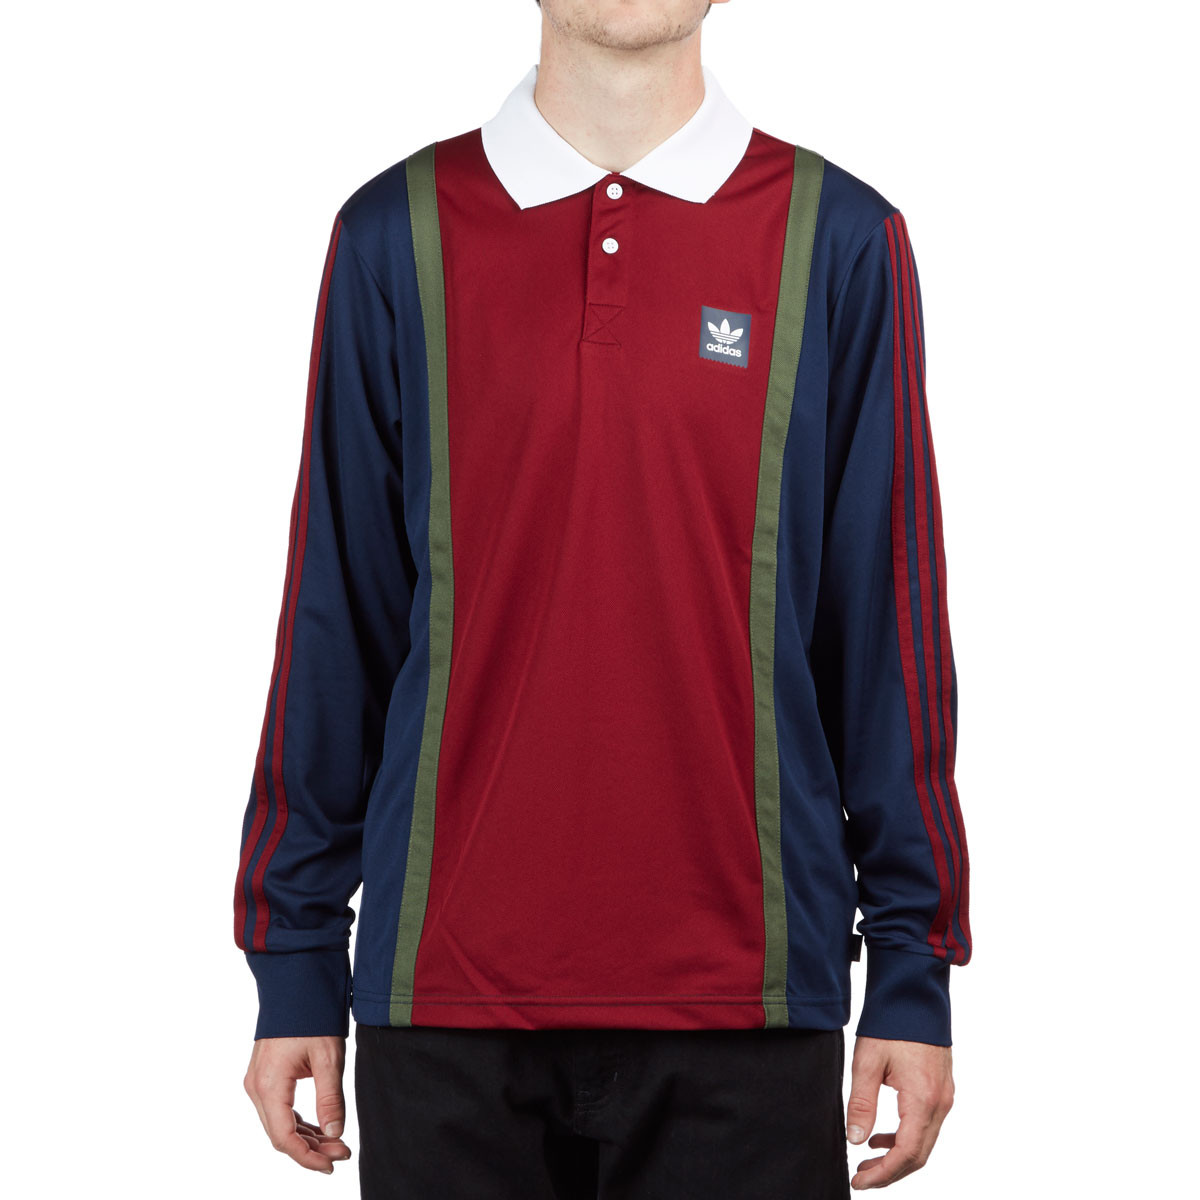 finest selection 5b66c 2ef24 Adidas Rugby Jersey - Collegiate Navy/Collegiate Burgundy/Base Green